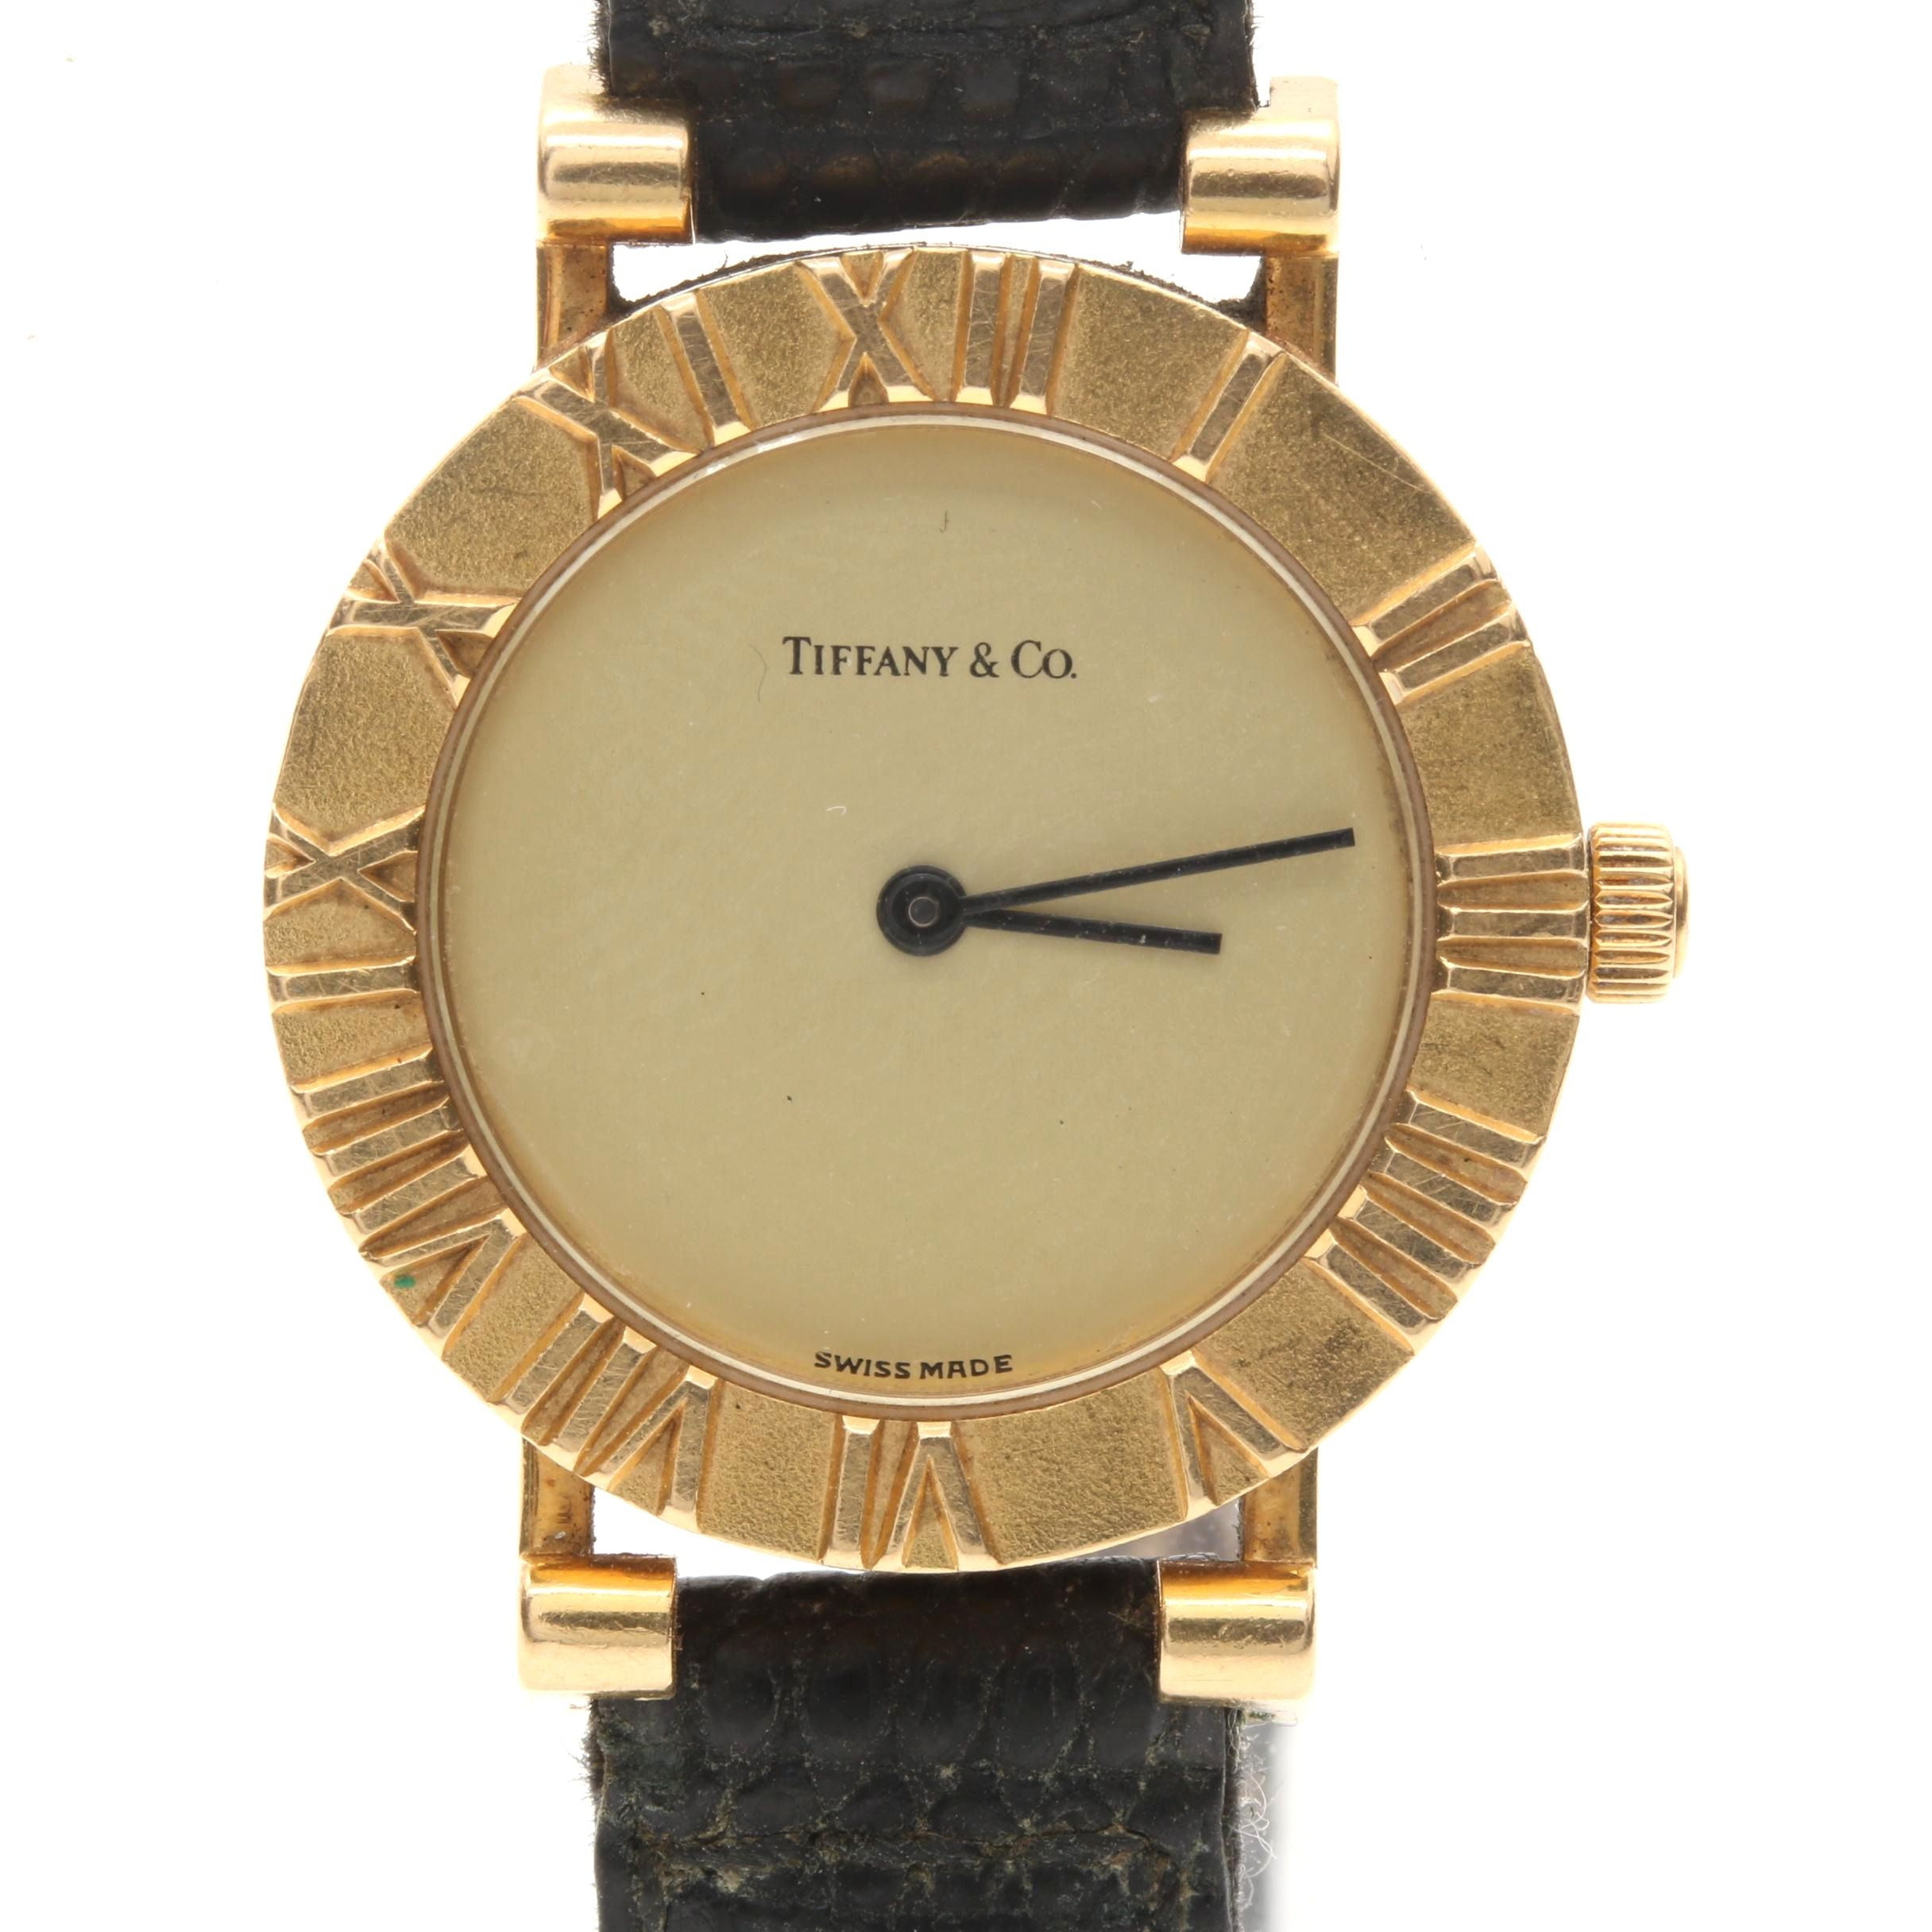 Tiffany & Co Atlas 18K Yellow Gold Wristwatch